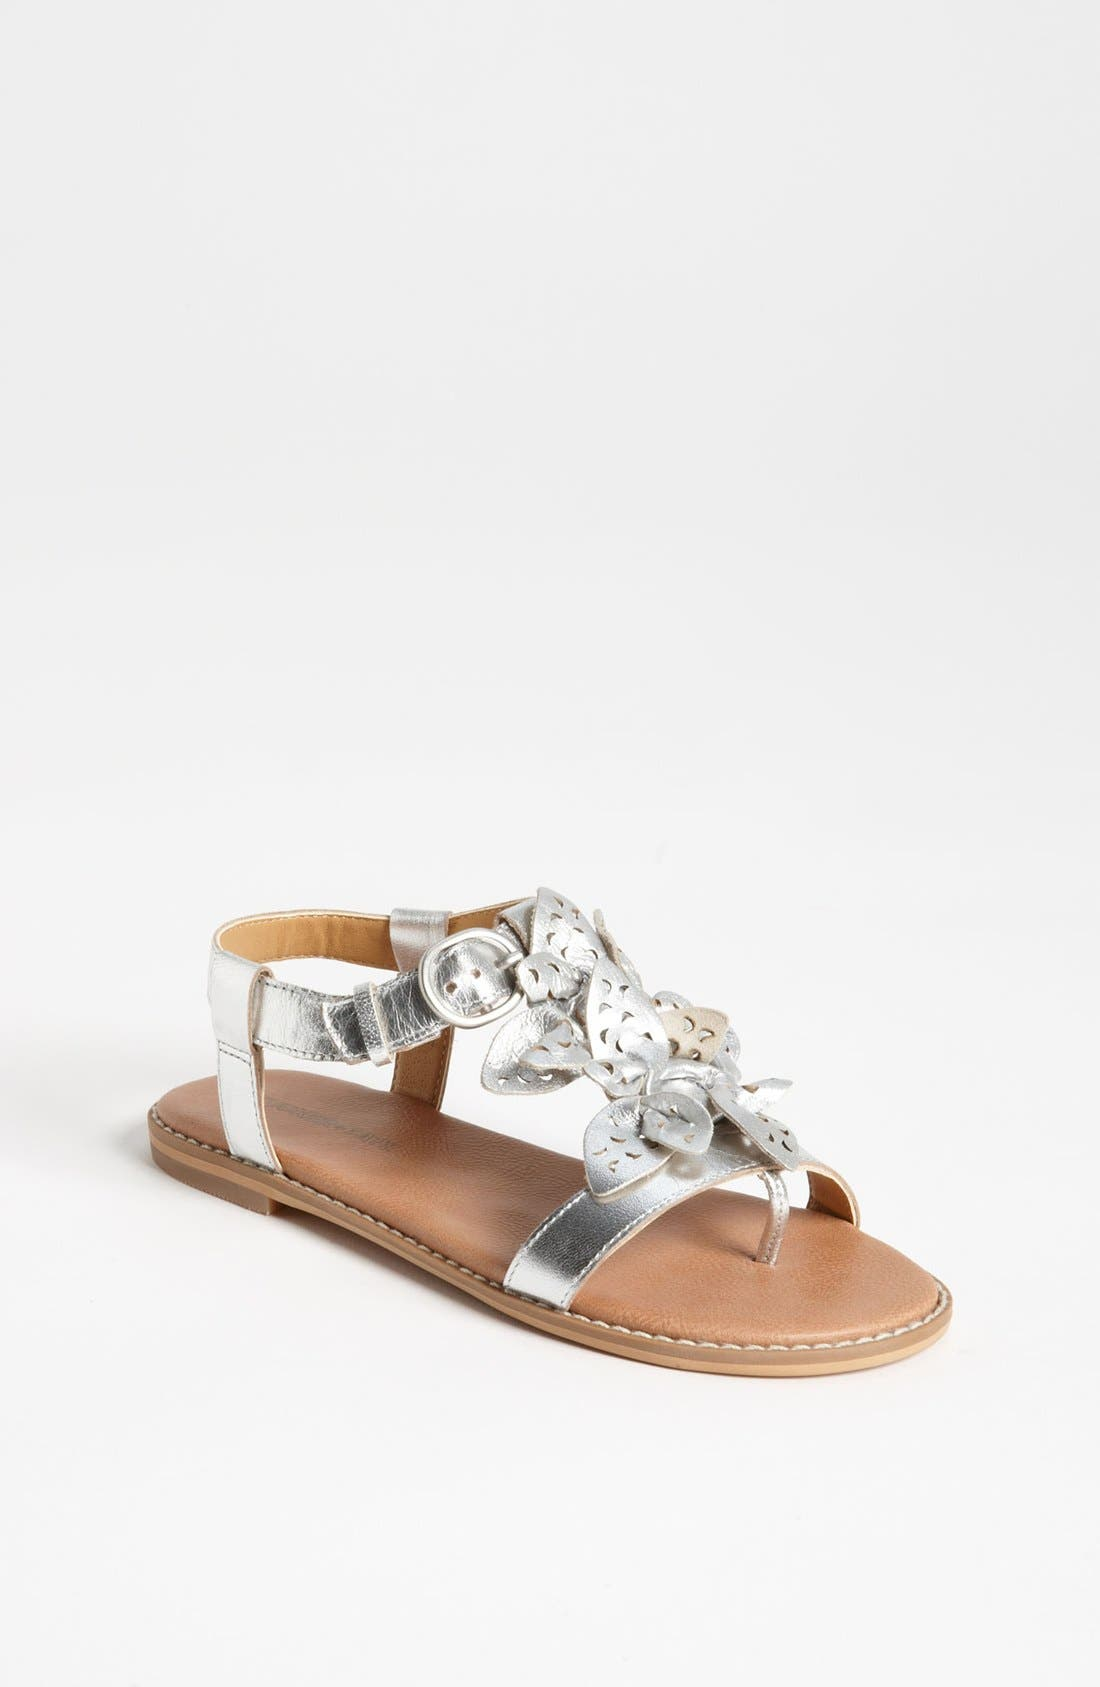 Alternate Image 1 Selected - Tucker + Tate 'Flutter' Sandal (Toddler & Little Kid)